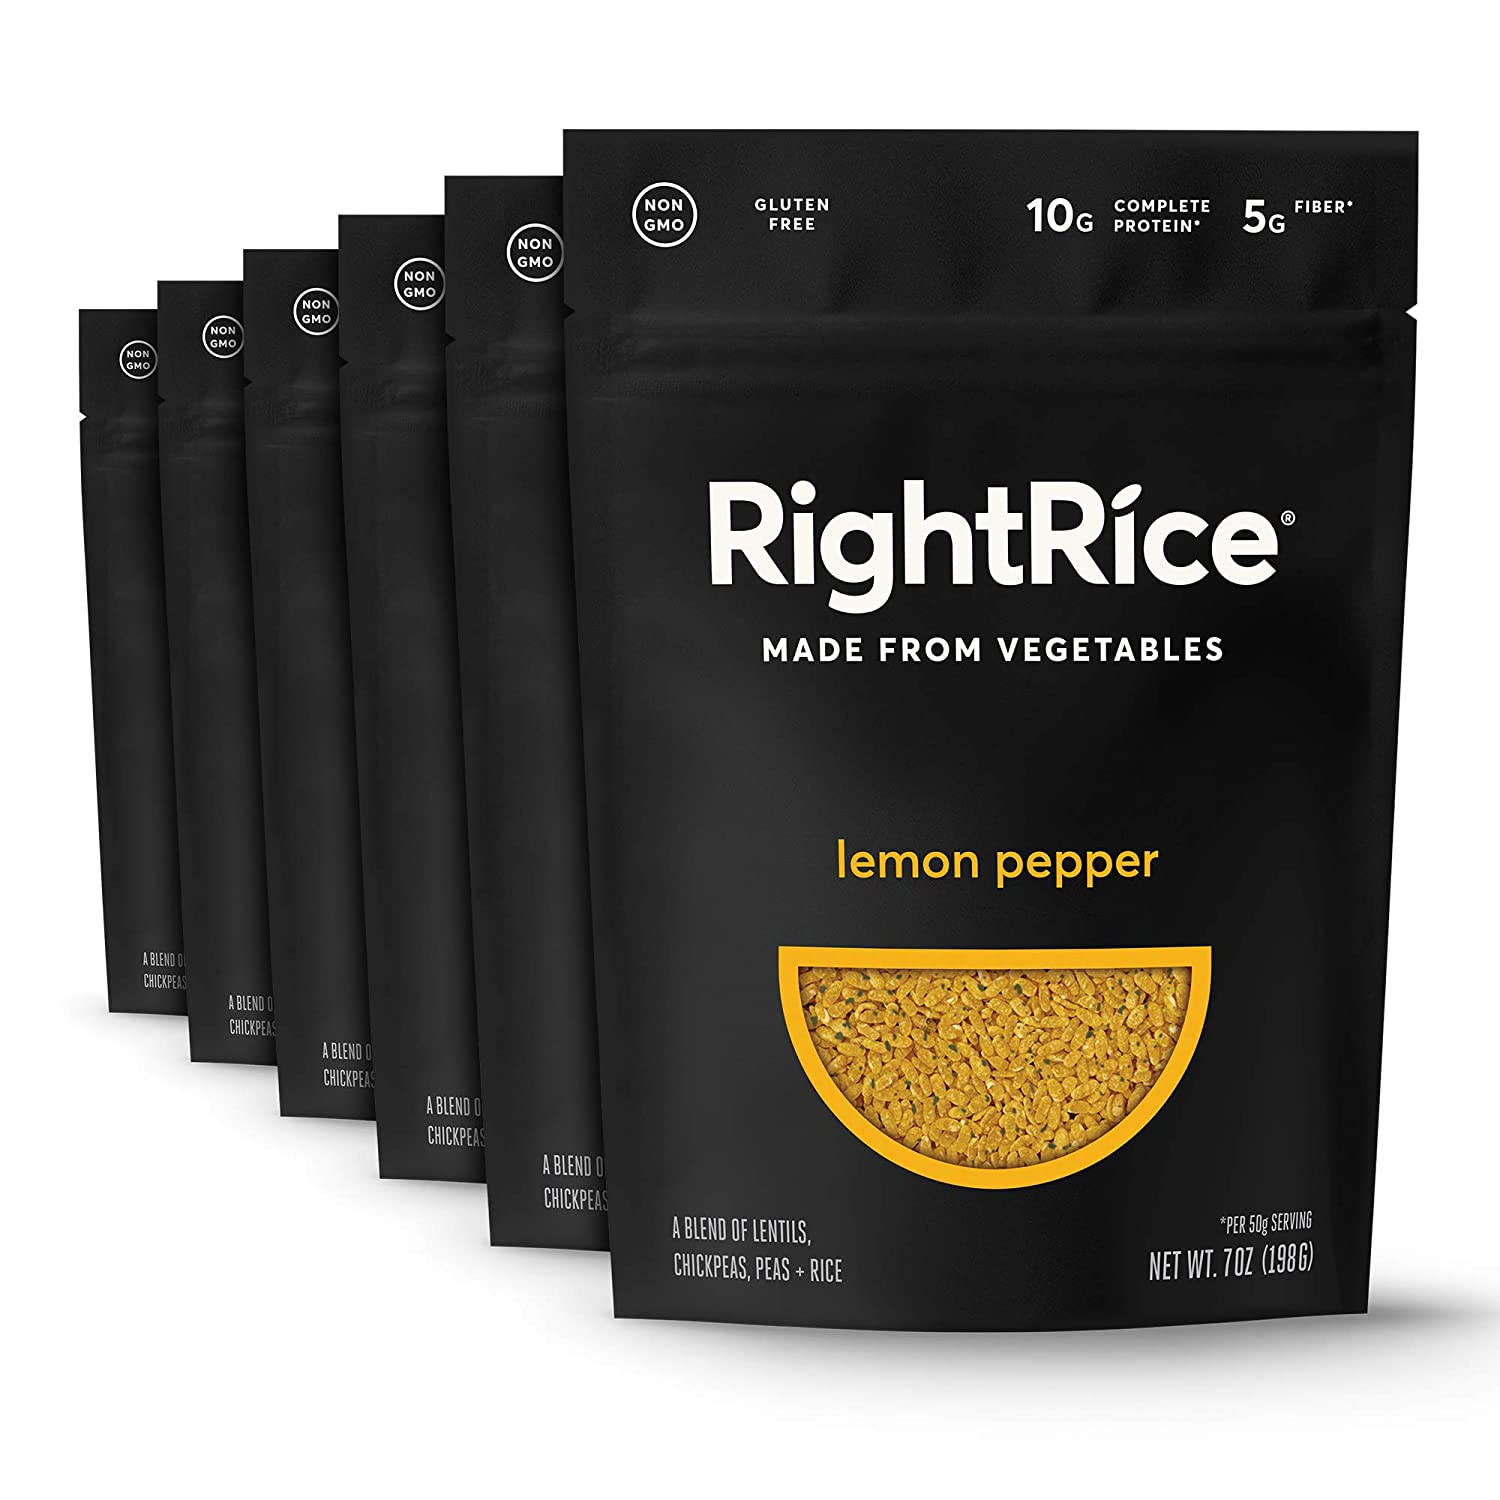 RightRice - Lemon Pepper (7oz. Pack of 6) - Made from Vegetables - High Protein, Vegan, non GMO, Gluten Free